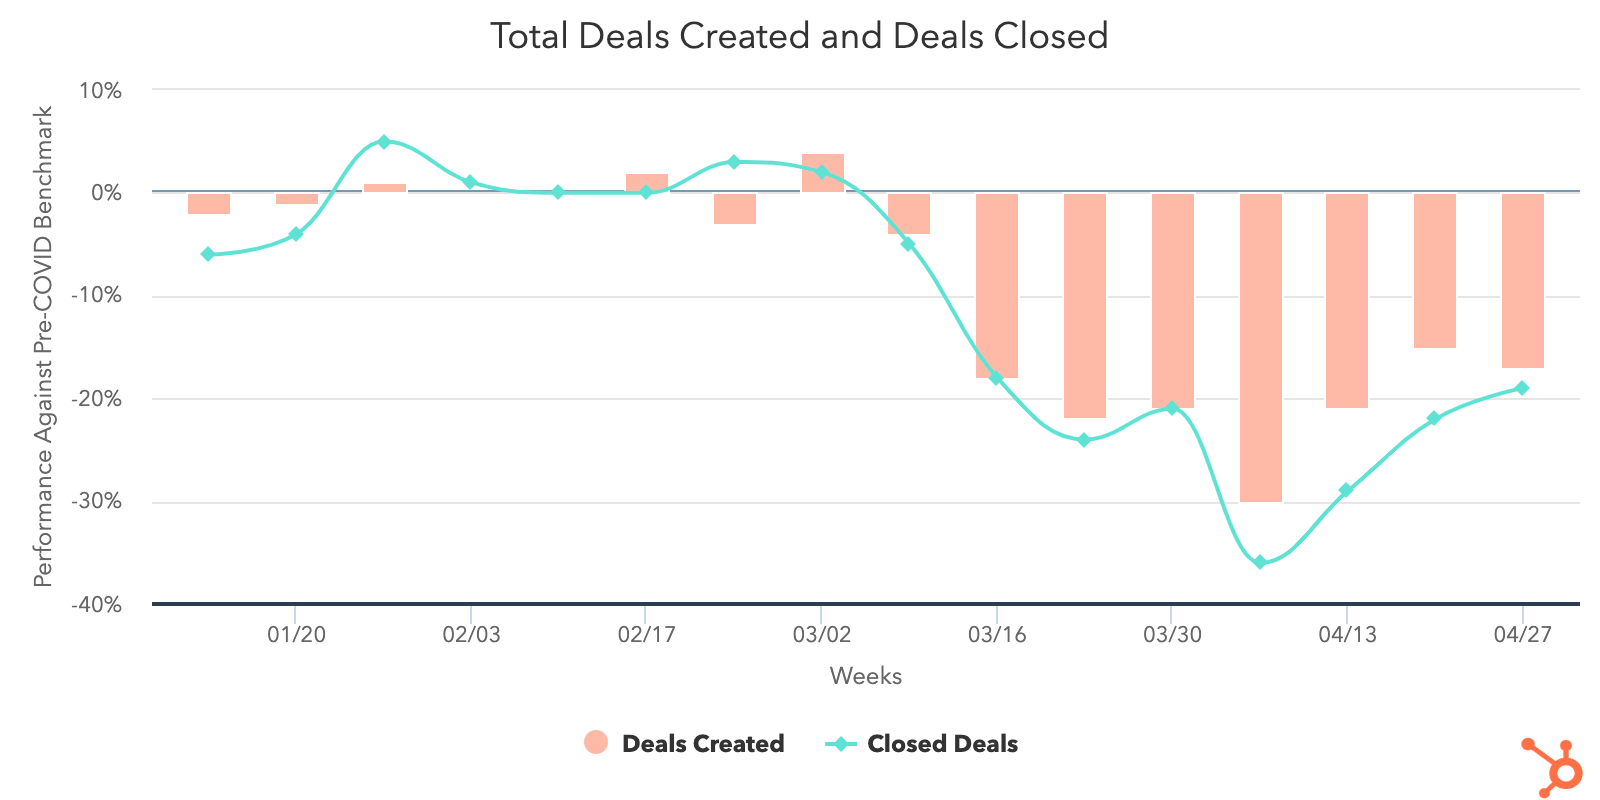 Deals-Created-and-Closed